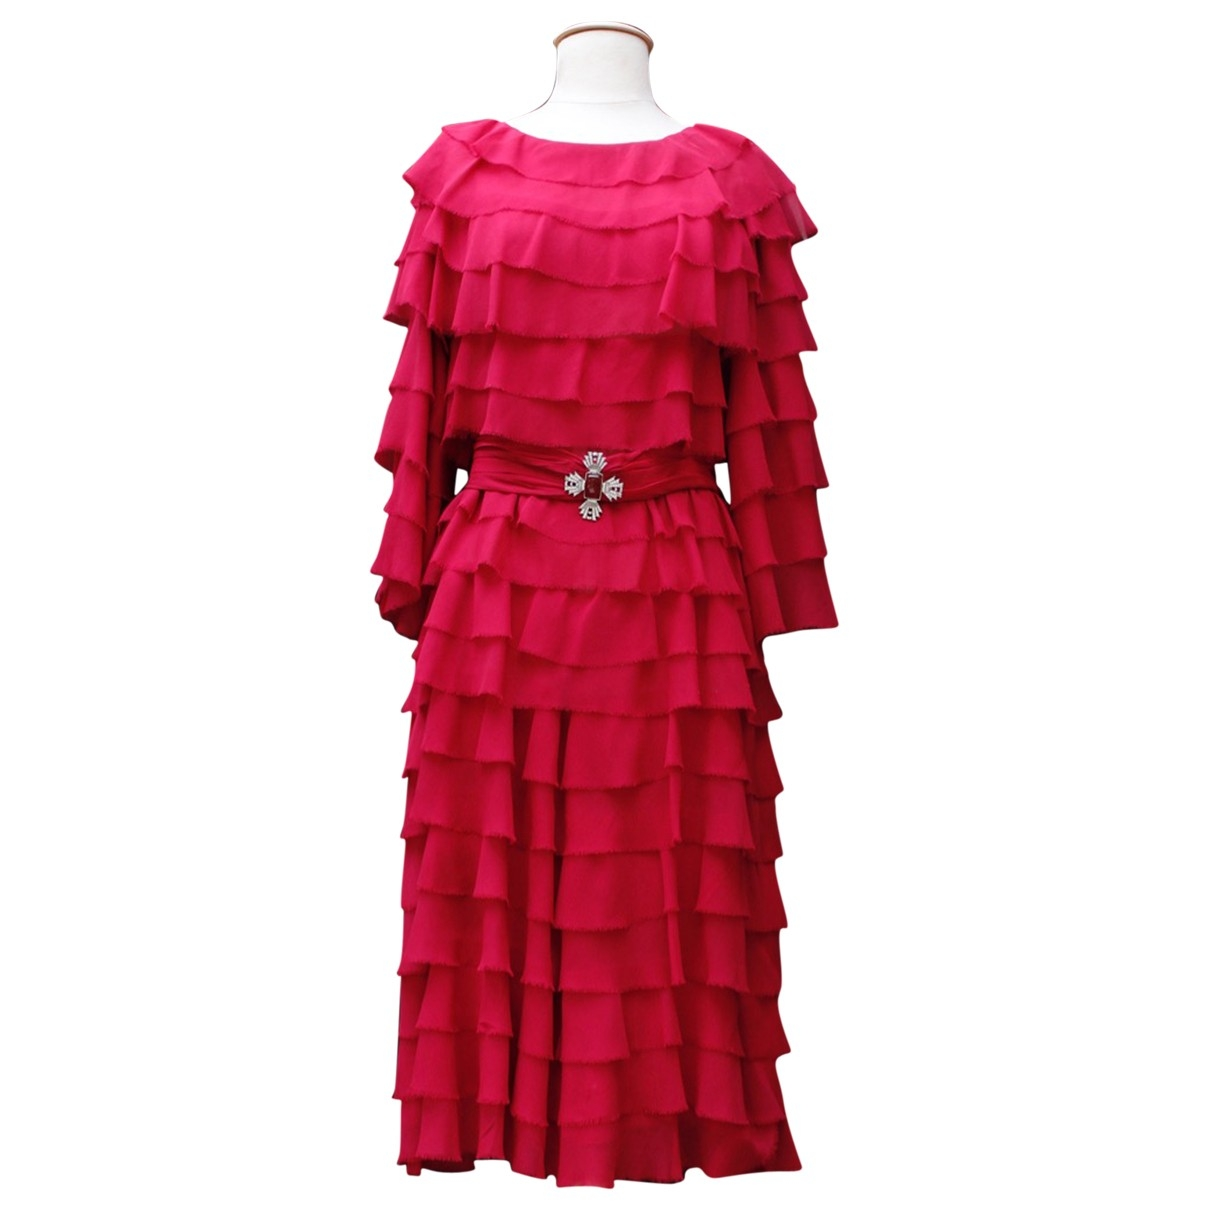 Givenchy \N Kleid in  Rosa Seide